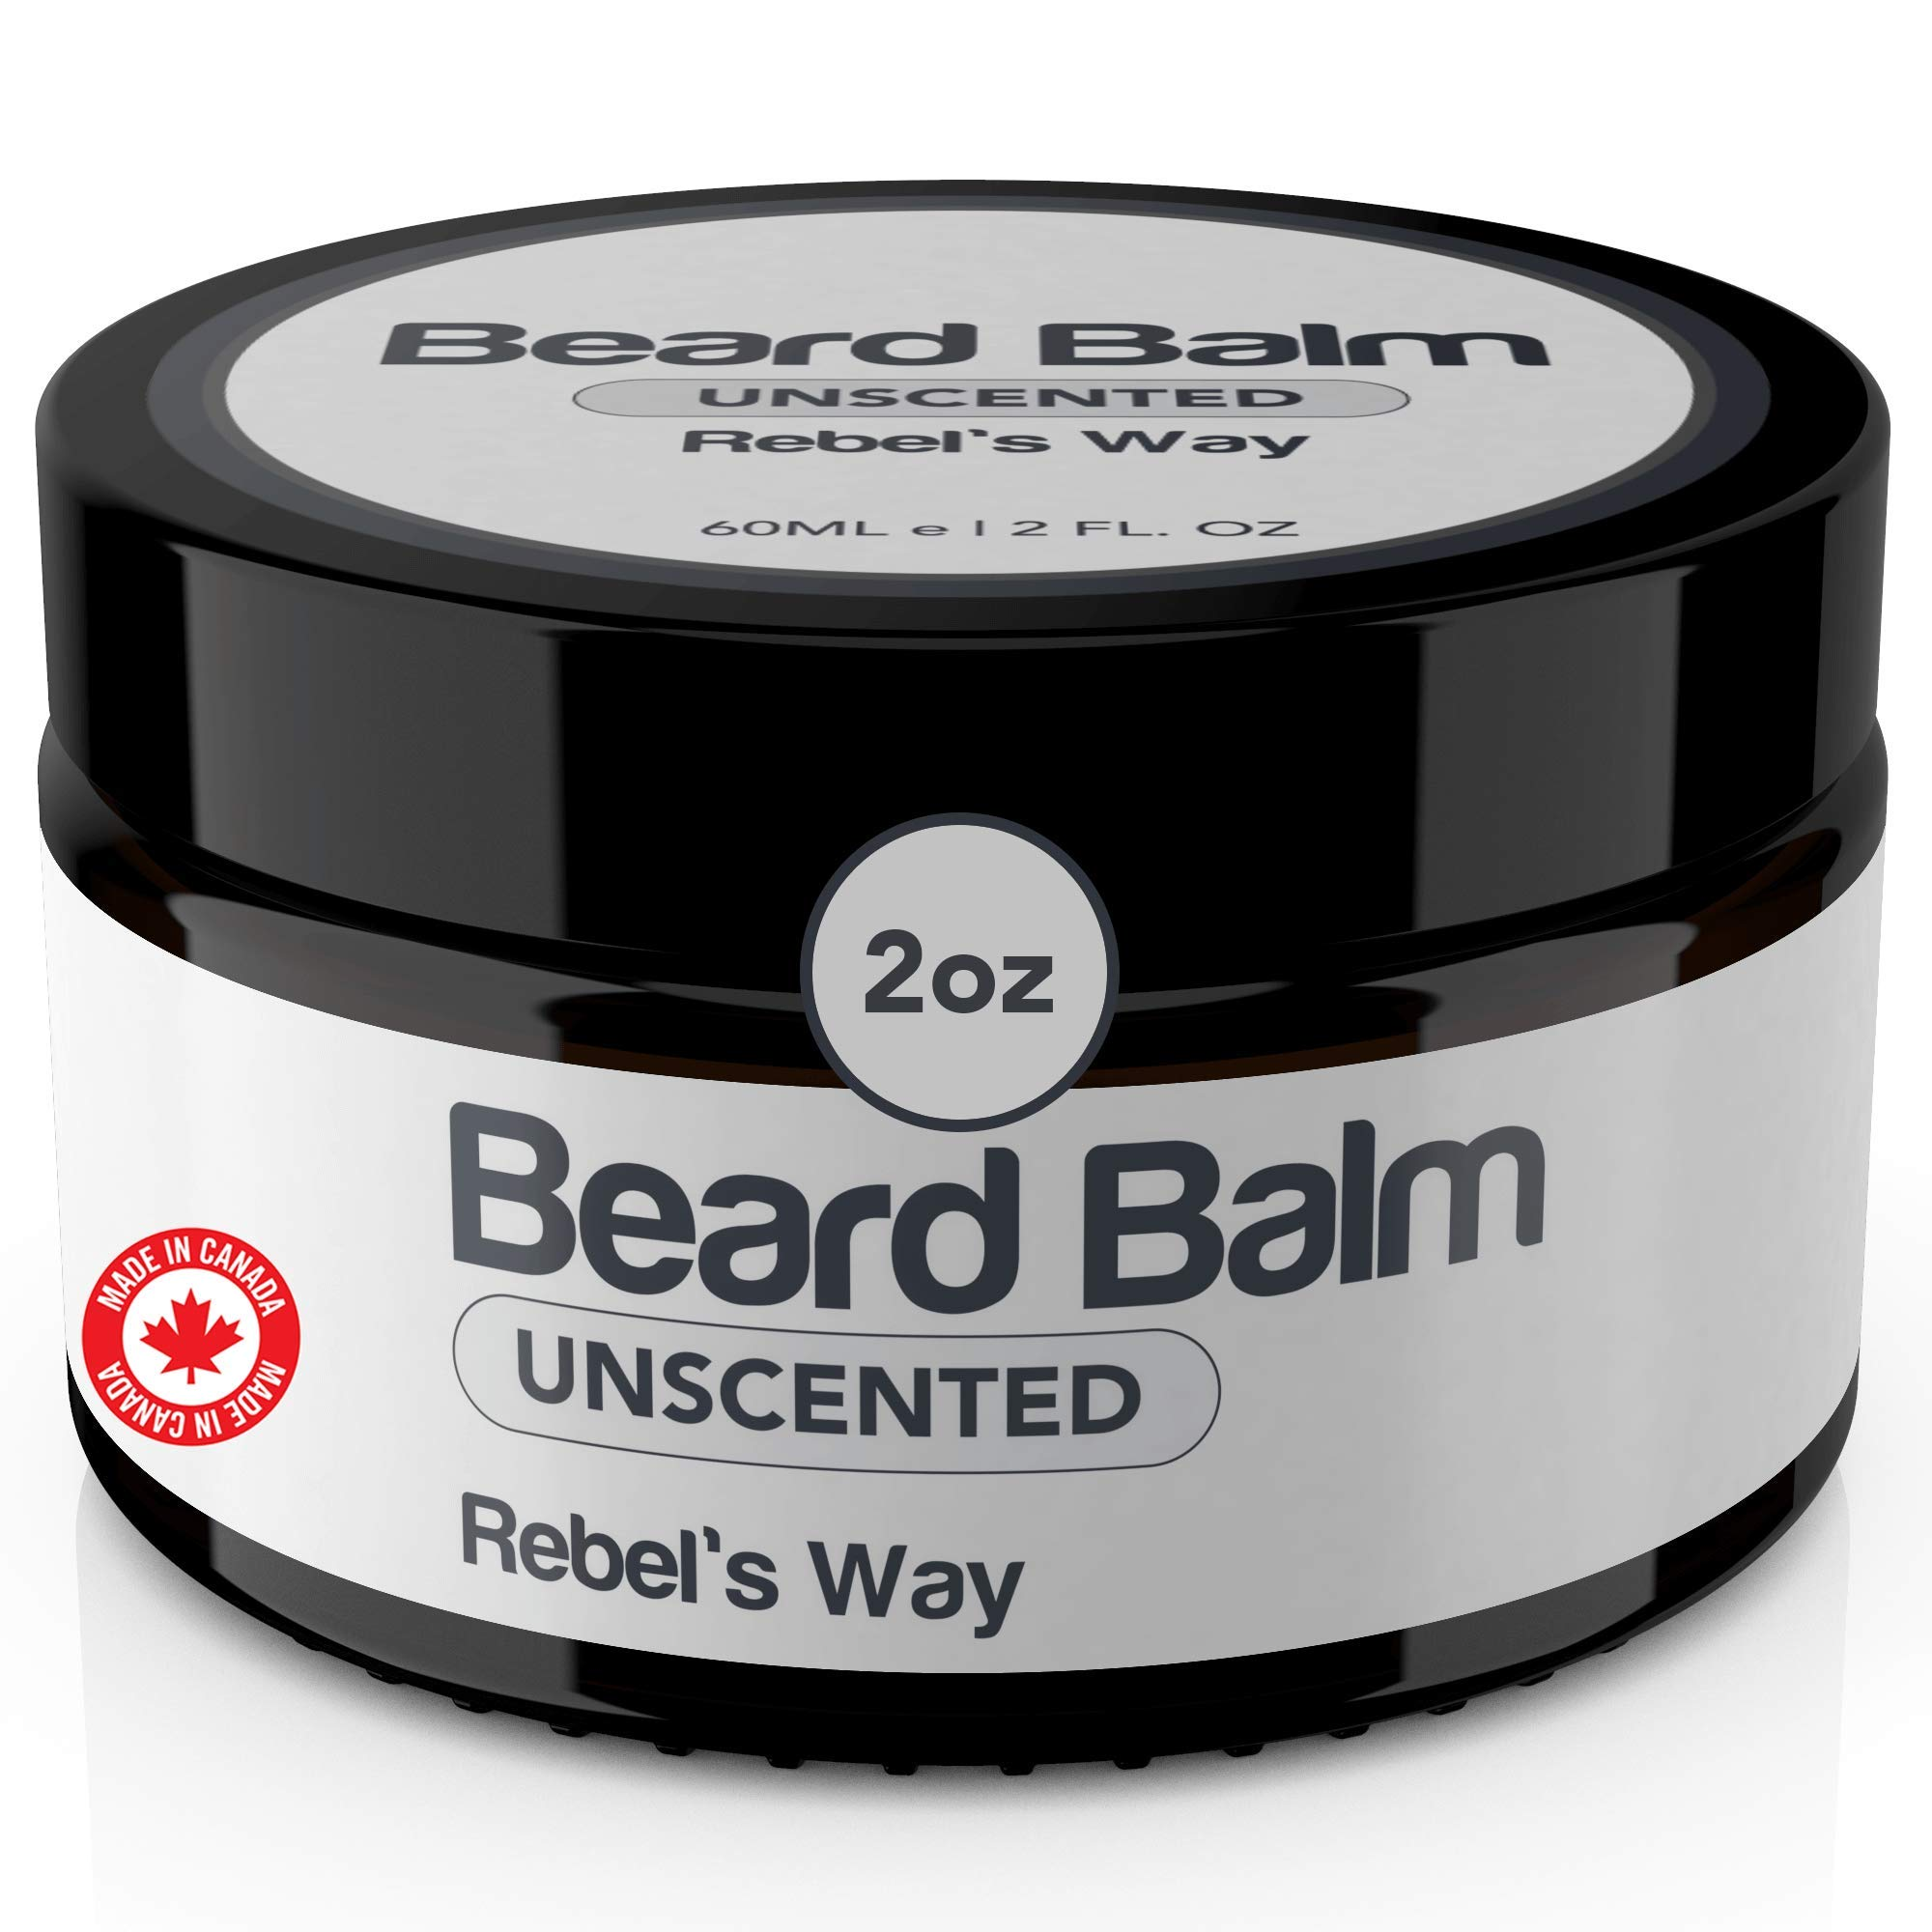 Unscented Beard Balm Made in Canada.